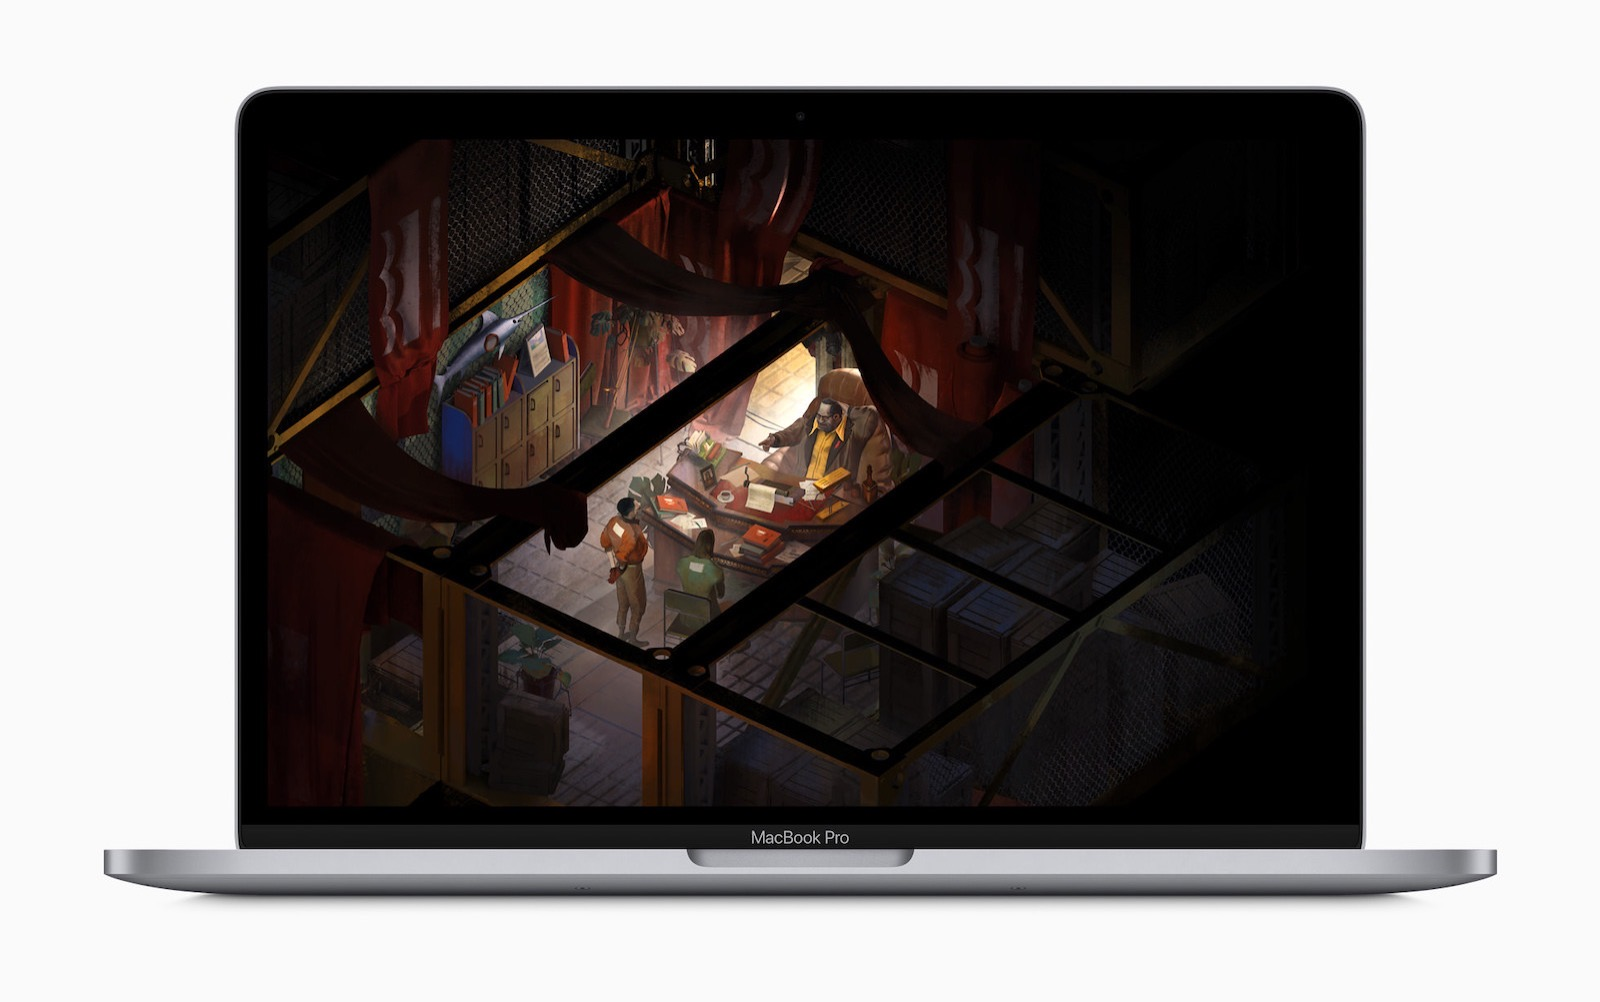 Best of 2020 macbookpro disco elysium 12022020